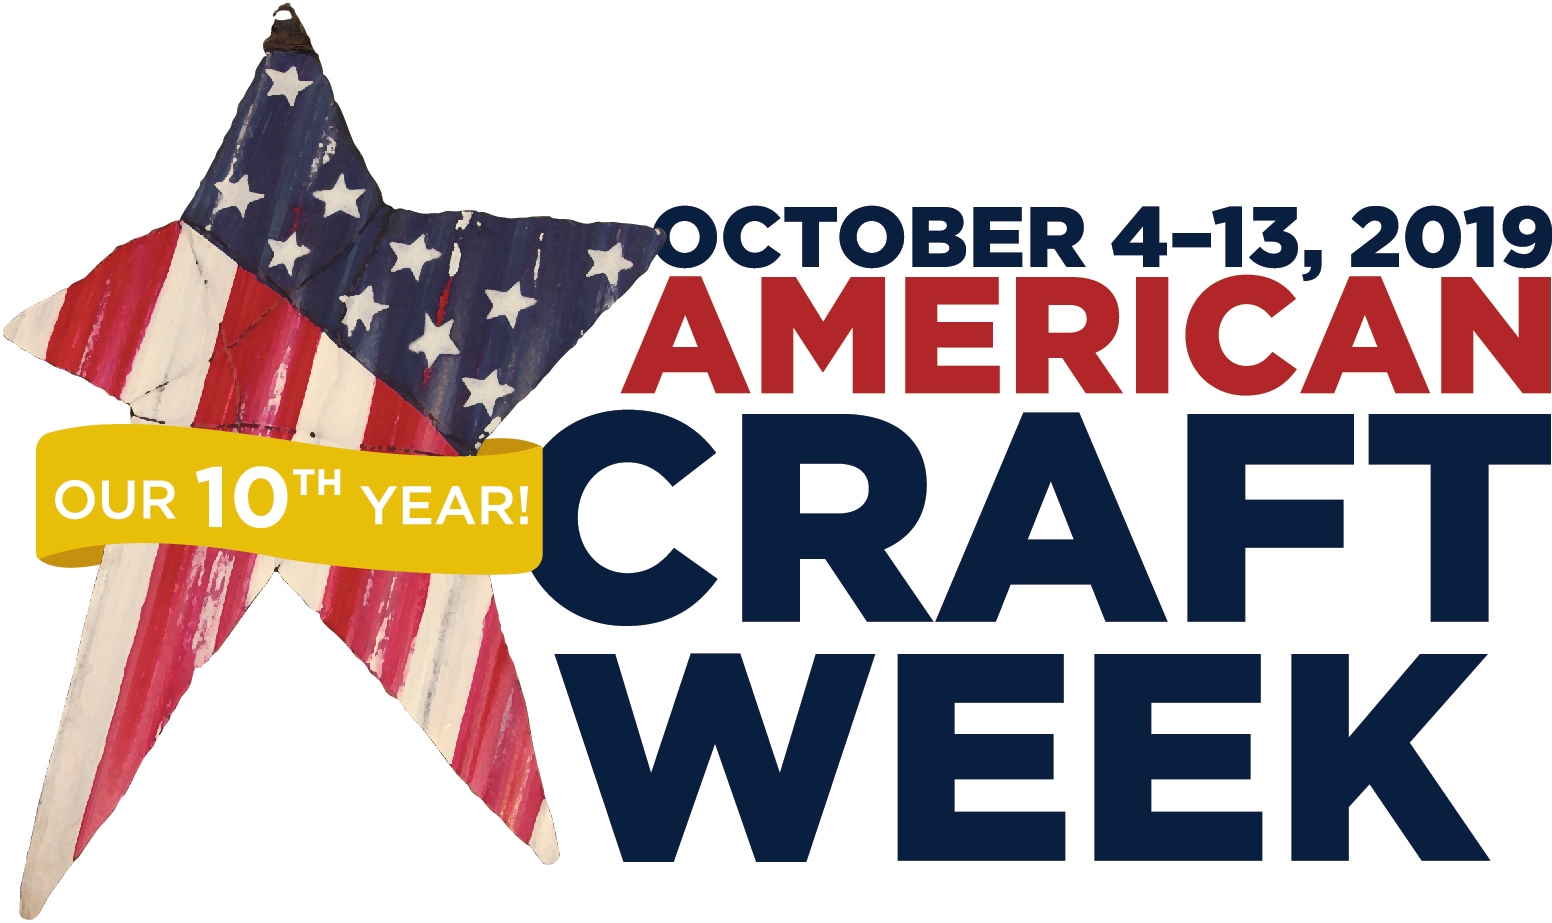 American Craft Week 2019.jpeg